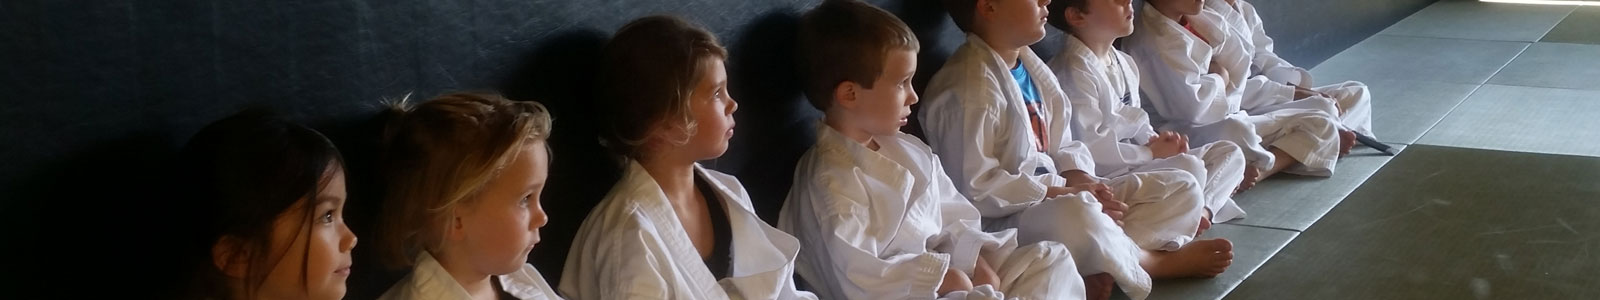 Kids Jiu Jitsu Programs at Optimus BJJ in Laguna Niguel